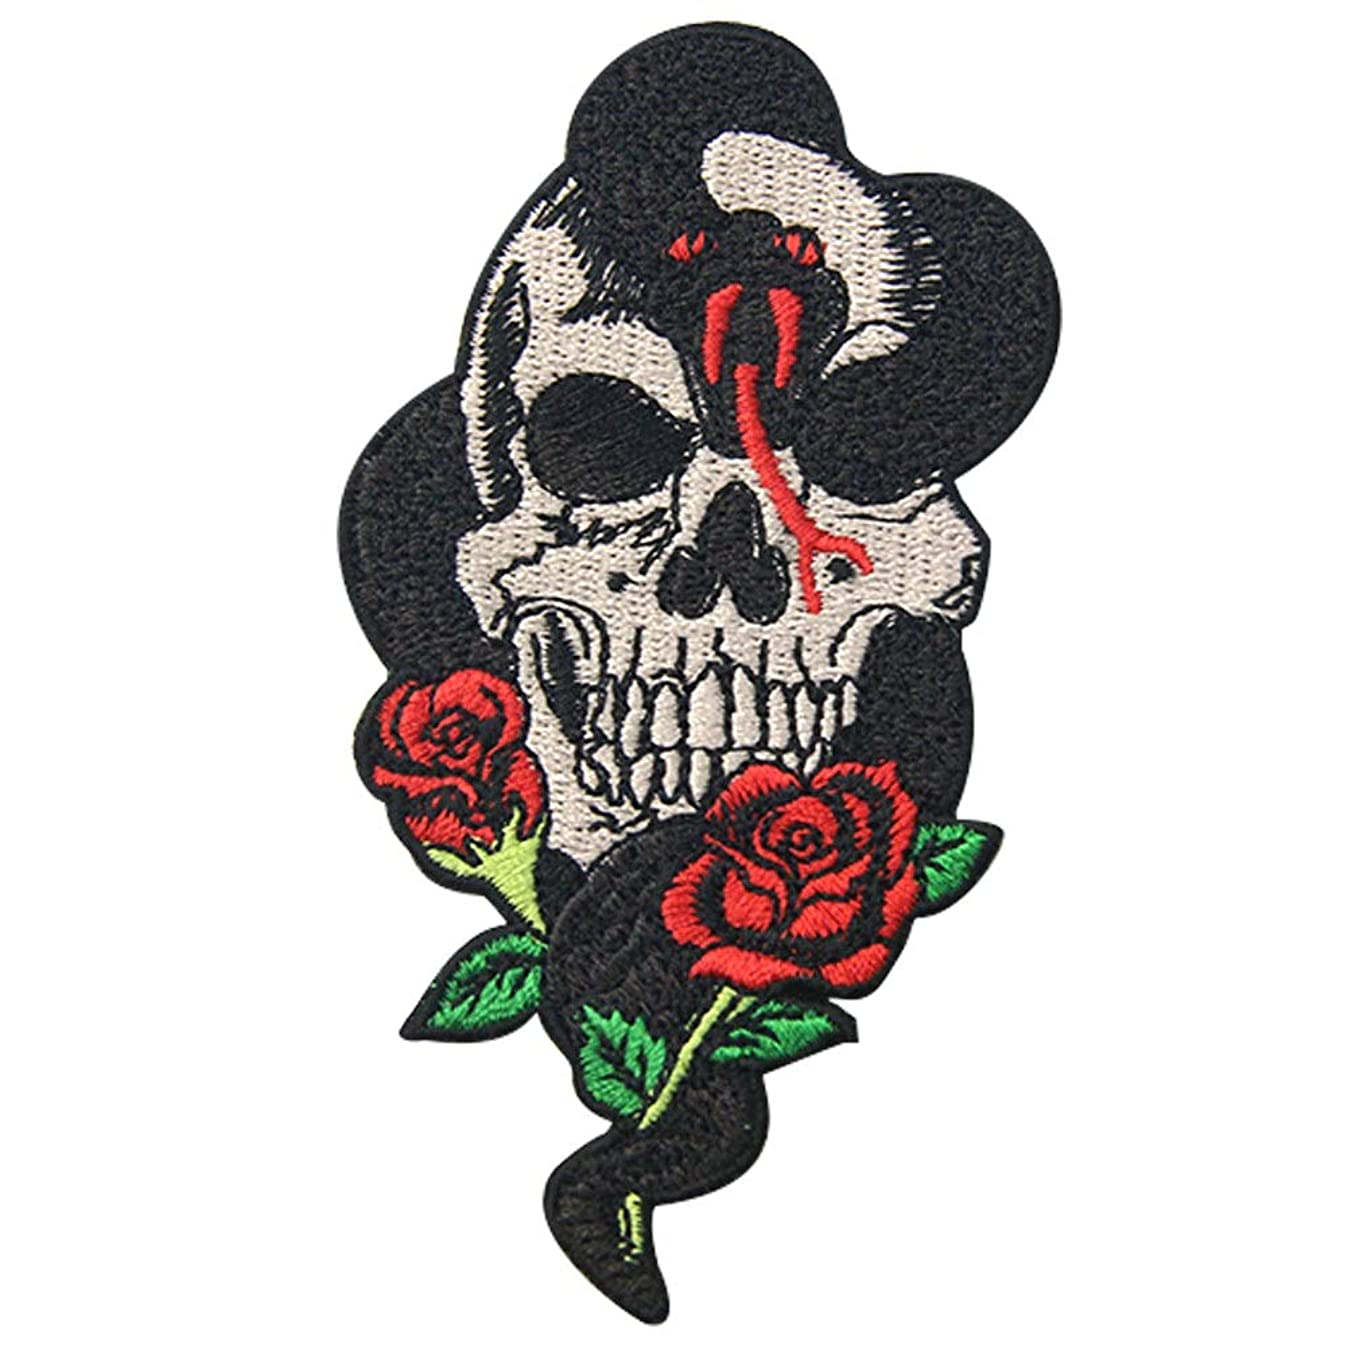 Snake Rose and Skull Patch Embroidered Applique Badge Iron On Sew On Emblem v2290858545